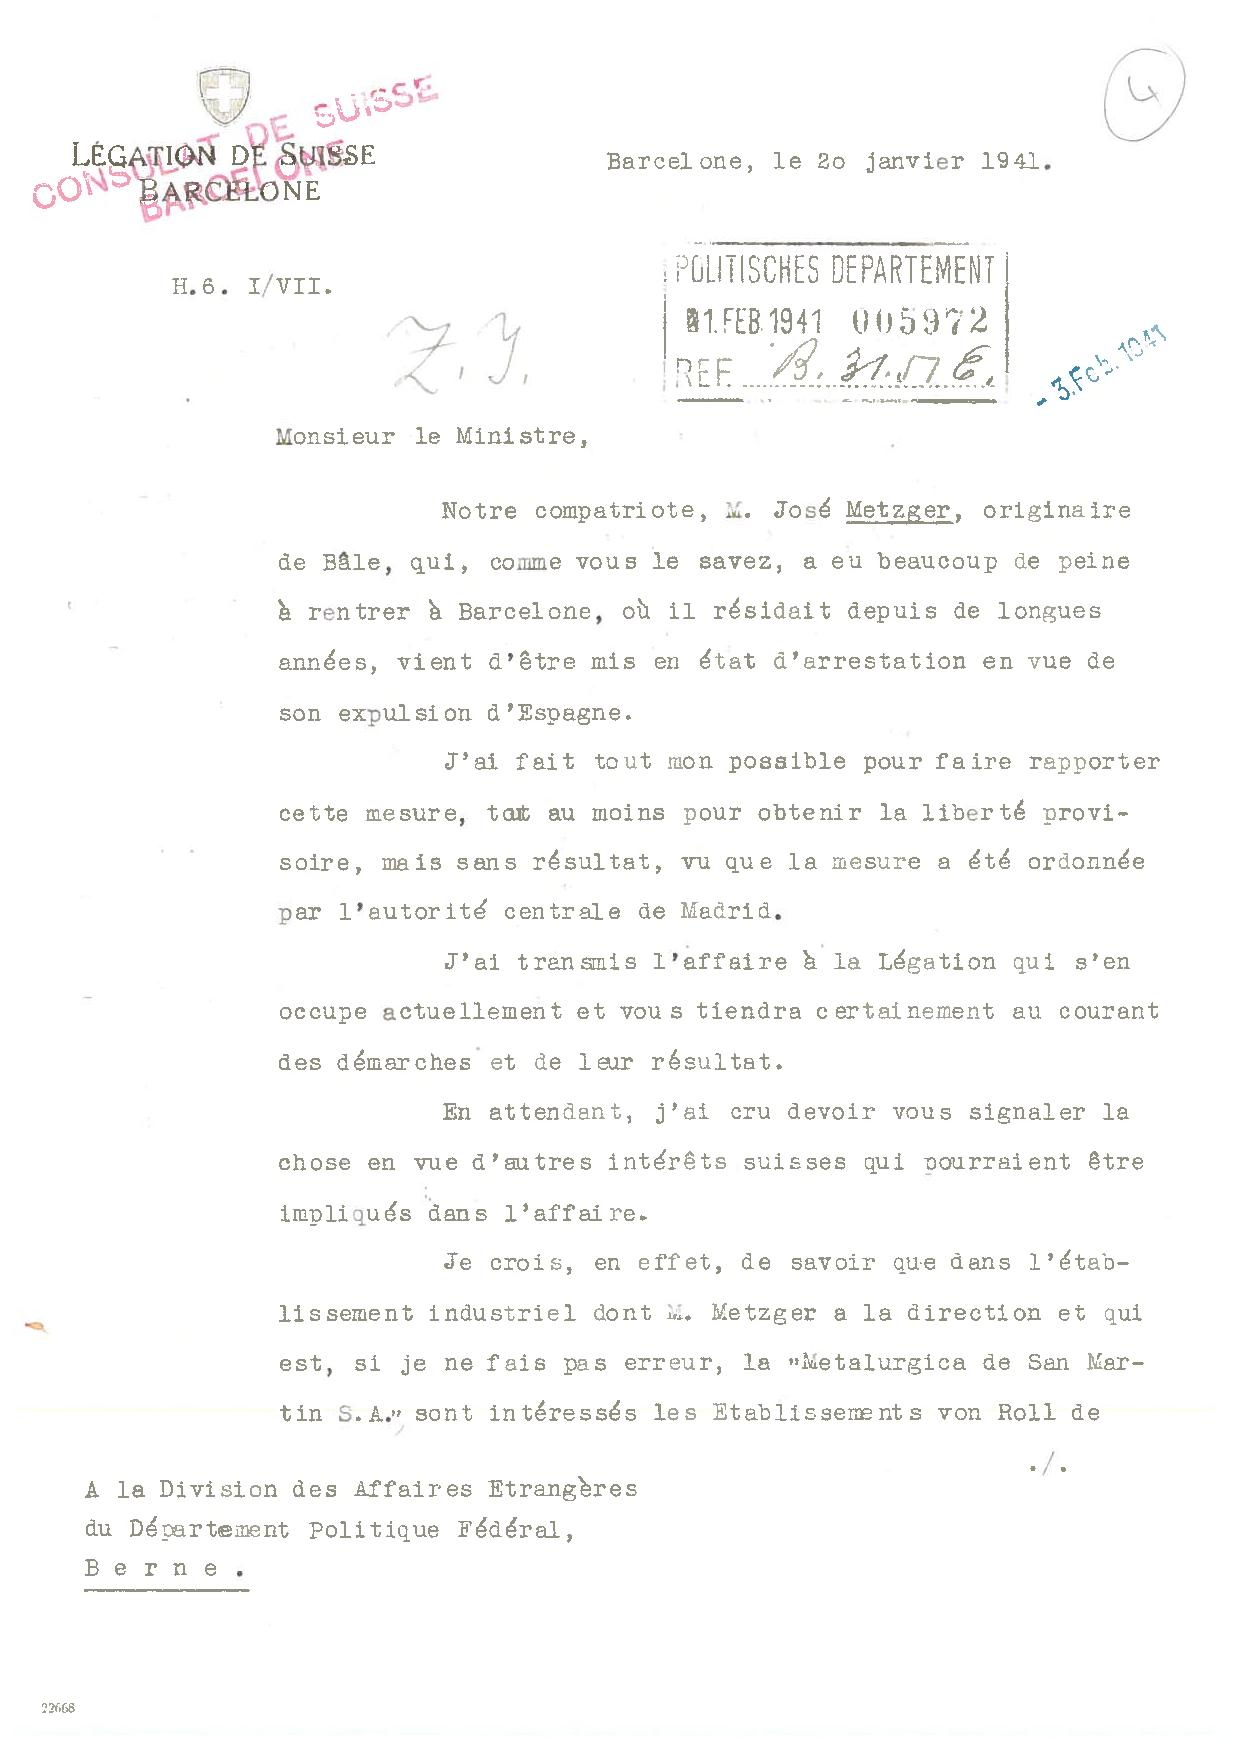 On February 14, 1941 the Swiss embassy in Madrid sends a letter to the Foreign Policy Division of the Federal Political Department in Bern, responding to requests made by José Metzger | Archive of the General Consulate of Switzerland in Barcelona